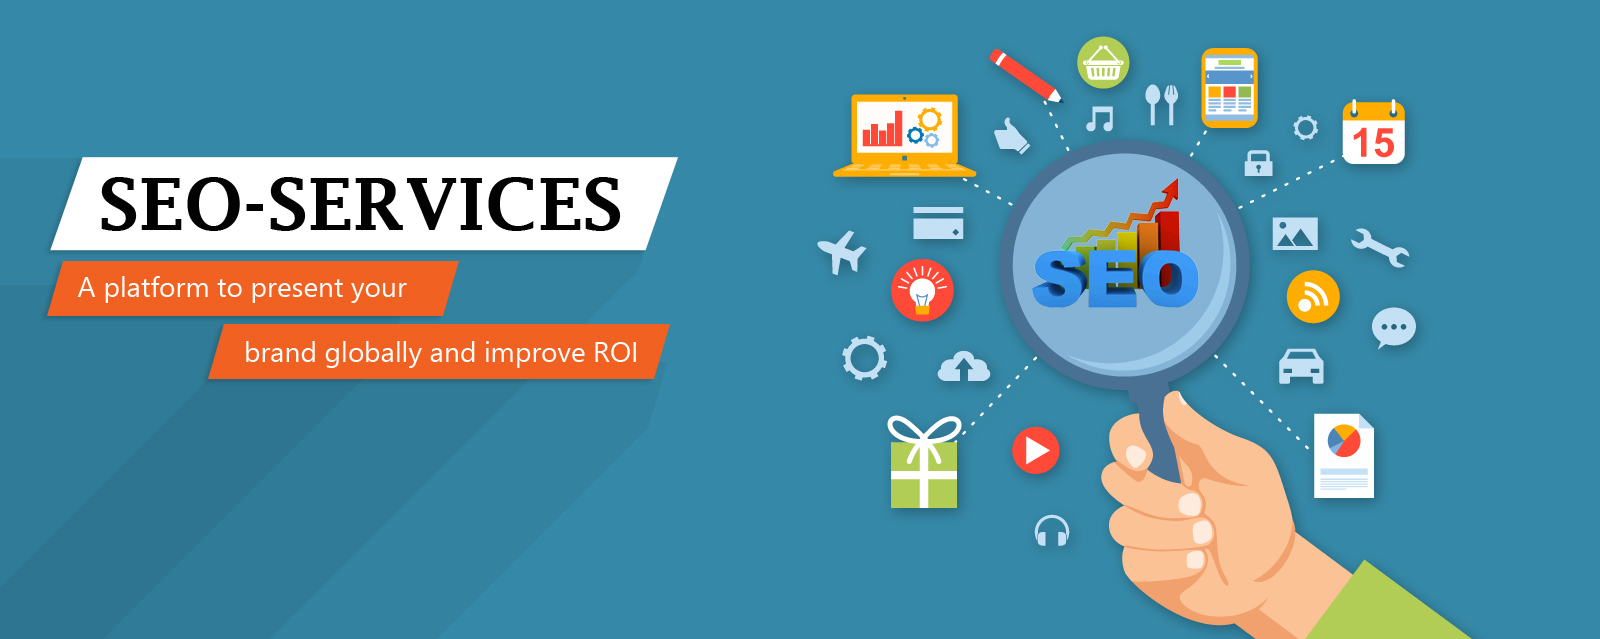 Image for Best SEO Services in Hyderabad | Digital Marketing |Branding by Pixels